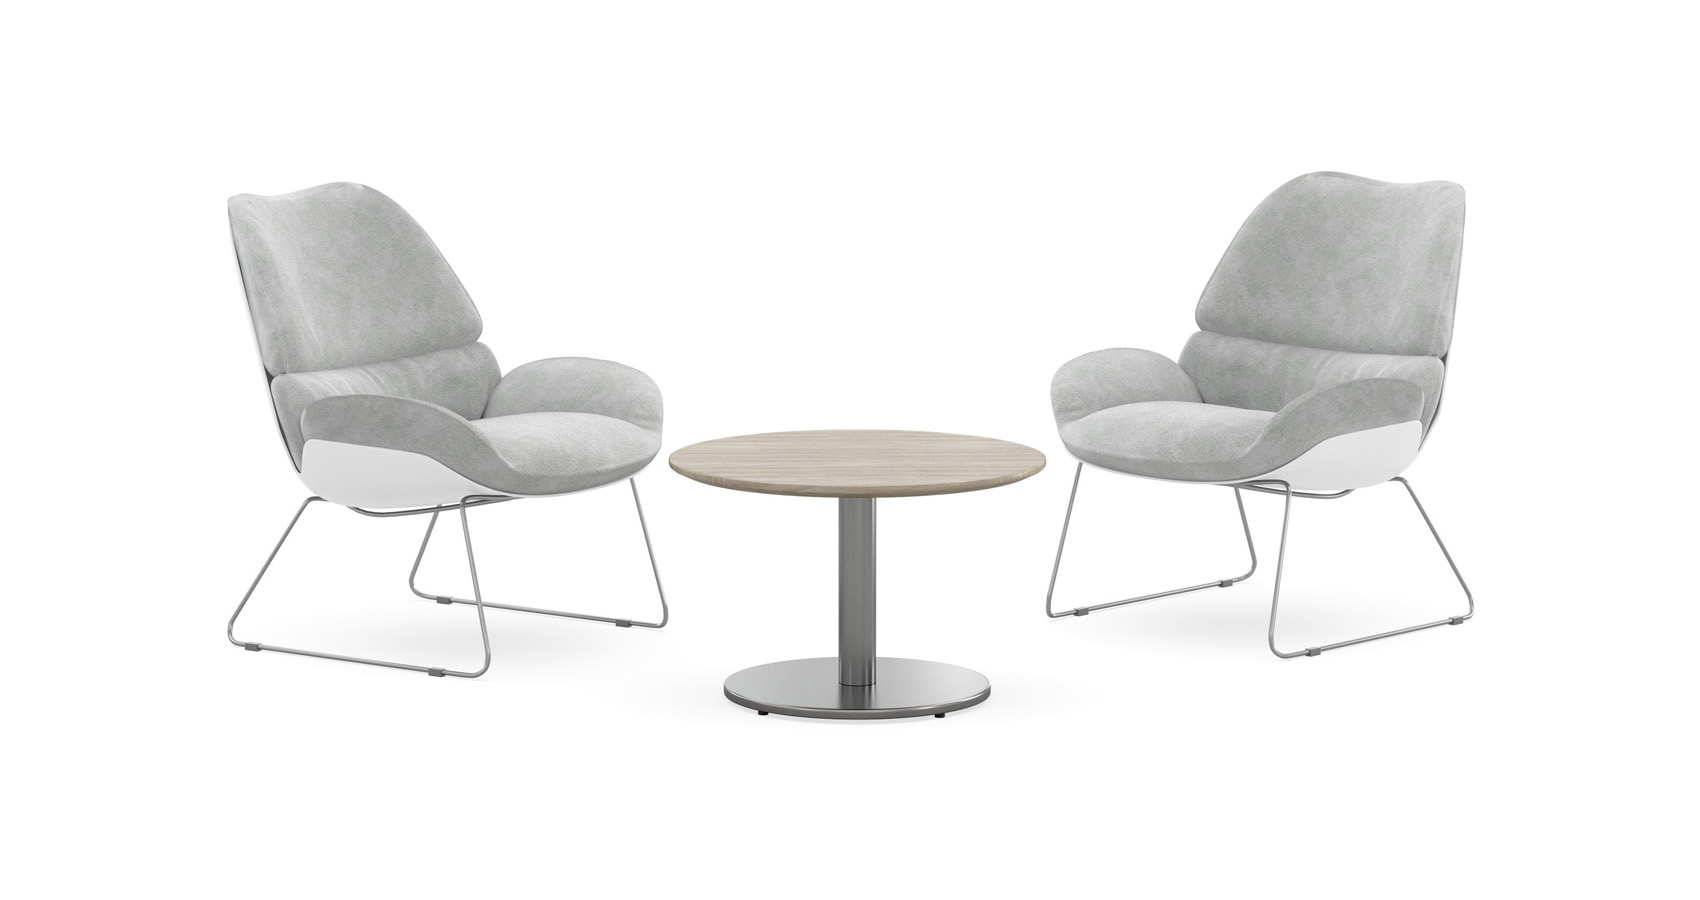 Halo Coffee Table with Jena Chairs